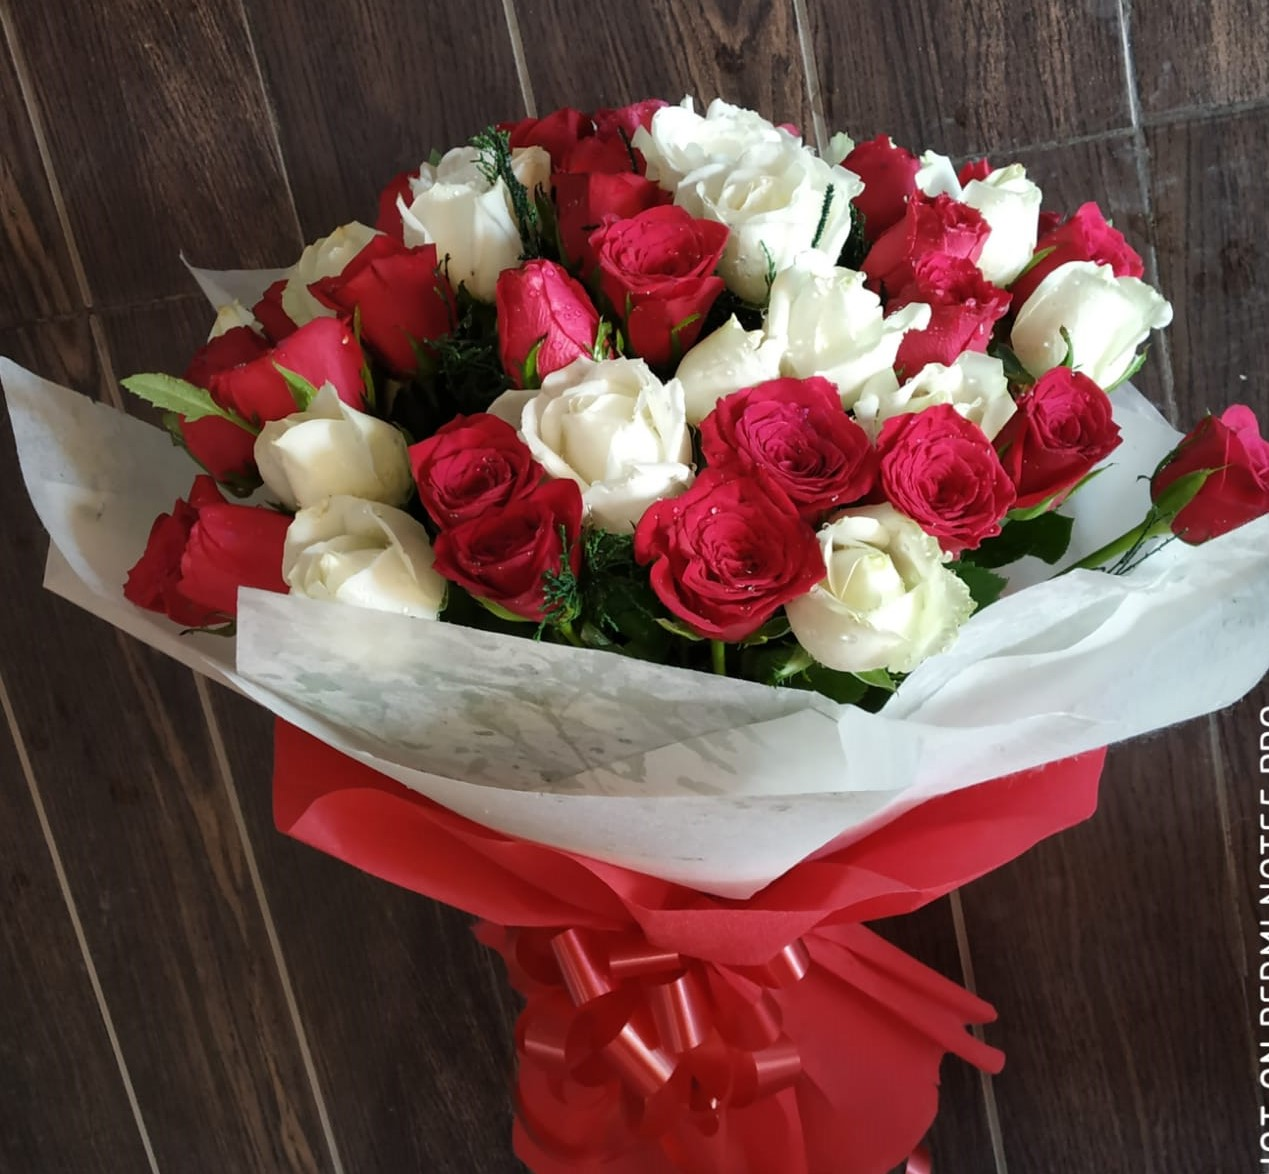 Flowers Delivery in Sector 51 GurgaonRed & White Roses in Duble Layer Packing